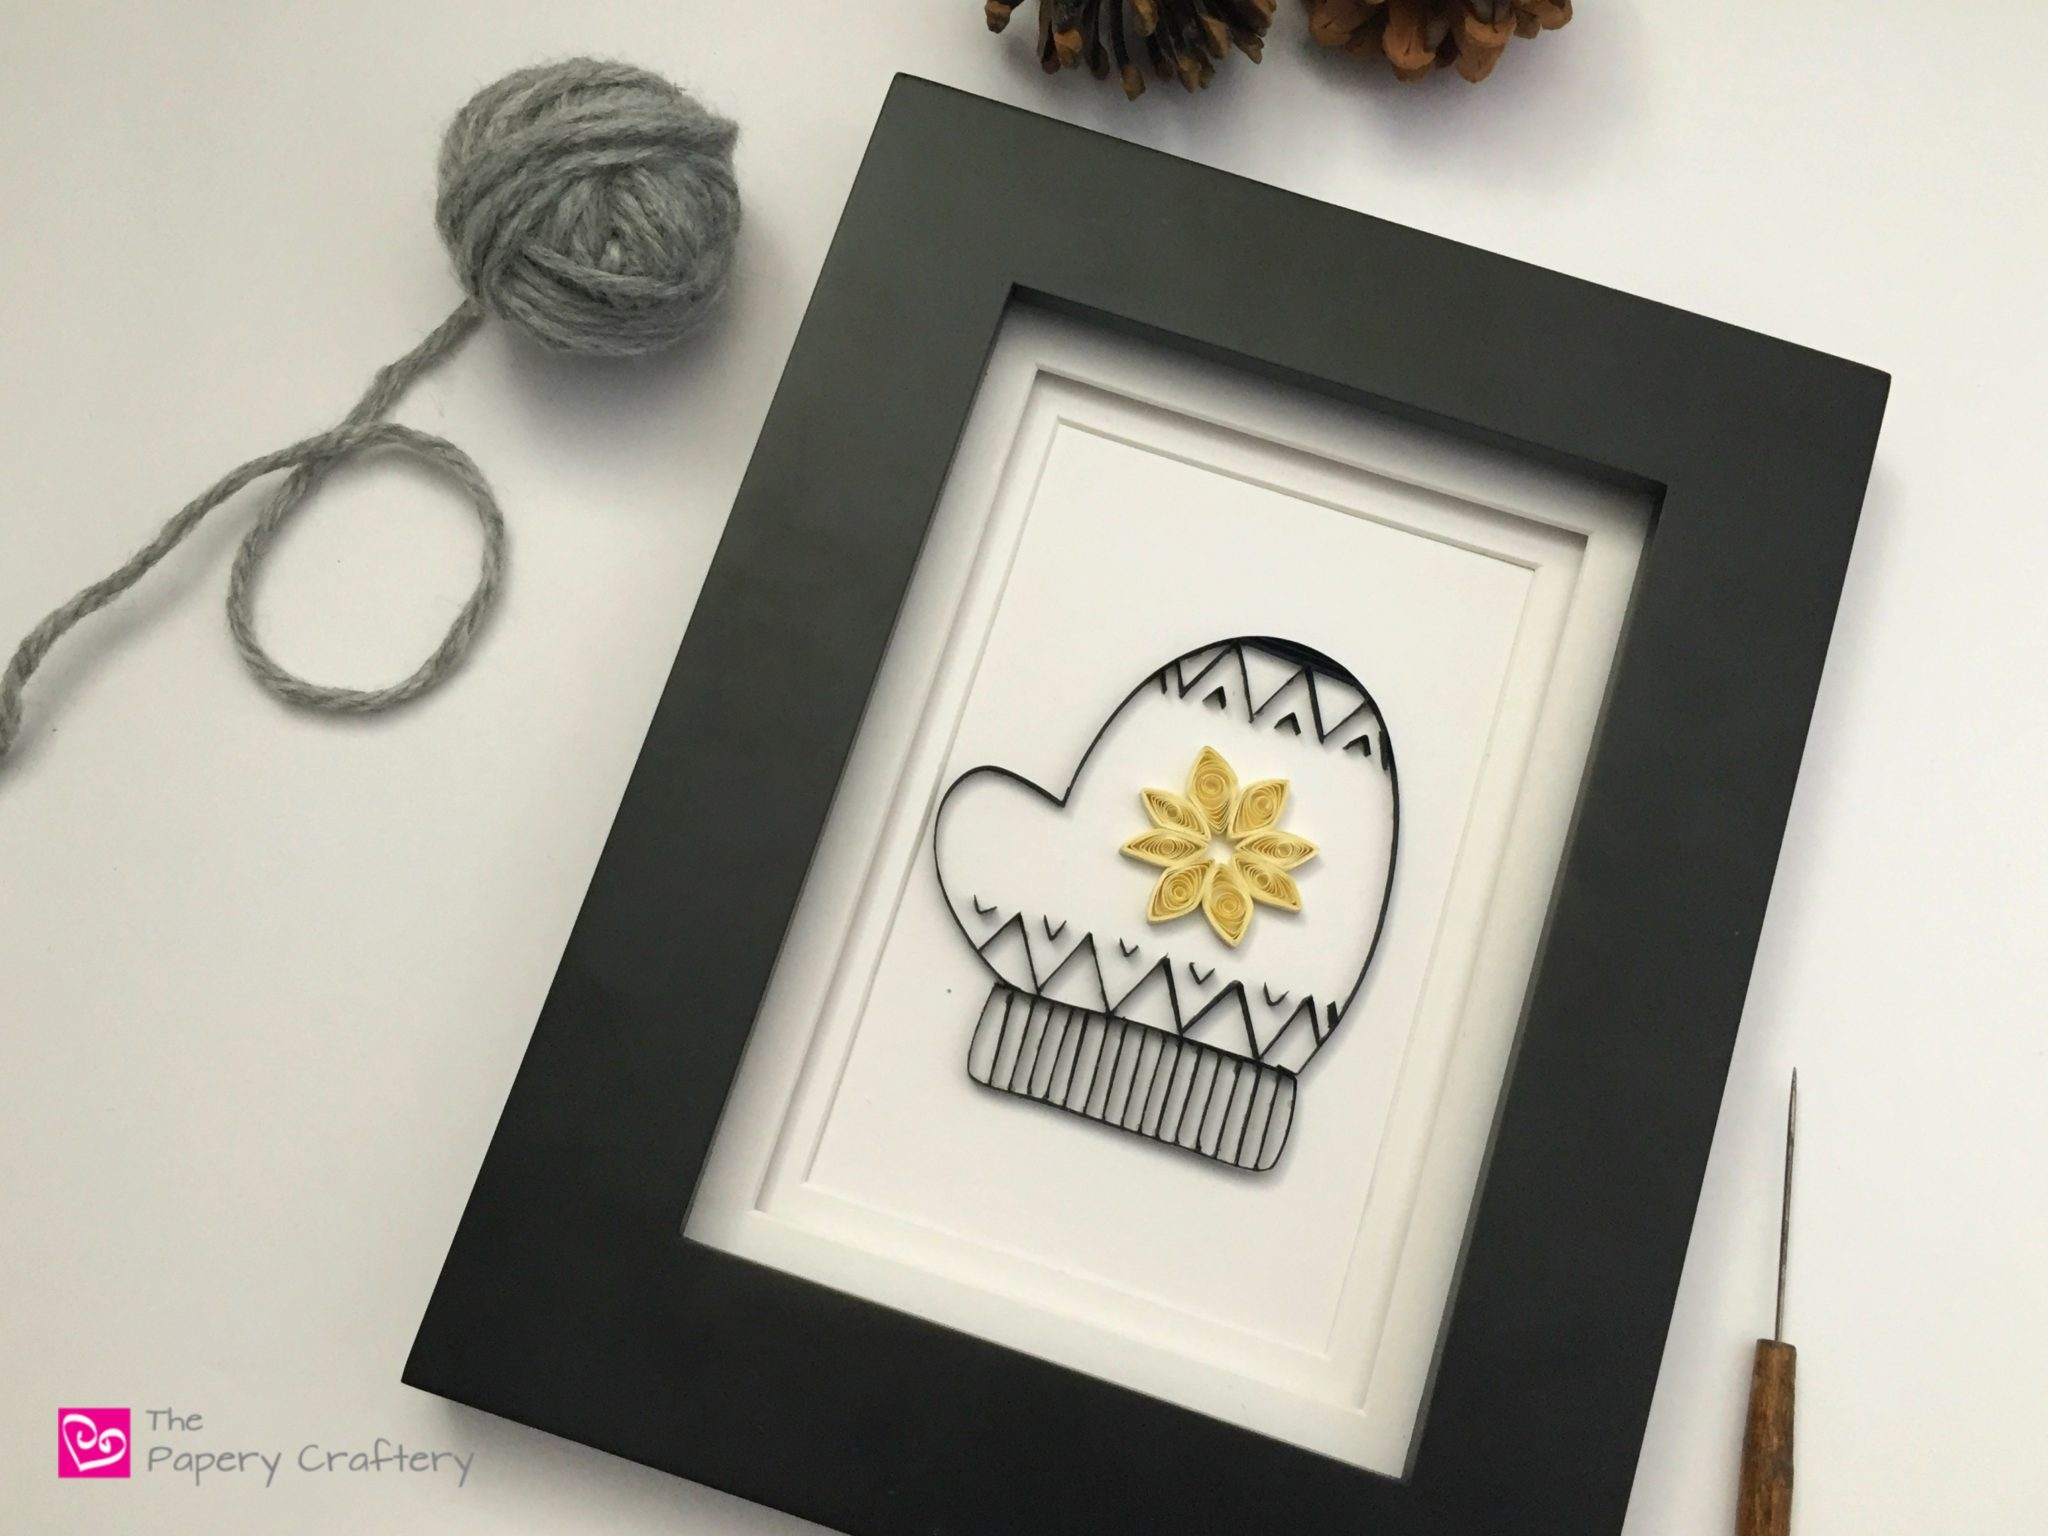 Quilling Paper Mittens ~ Make Your Own Winter Home Decor With These Simple  Mitten Templates |